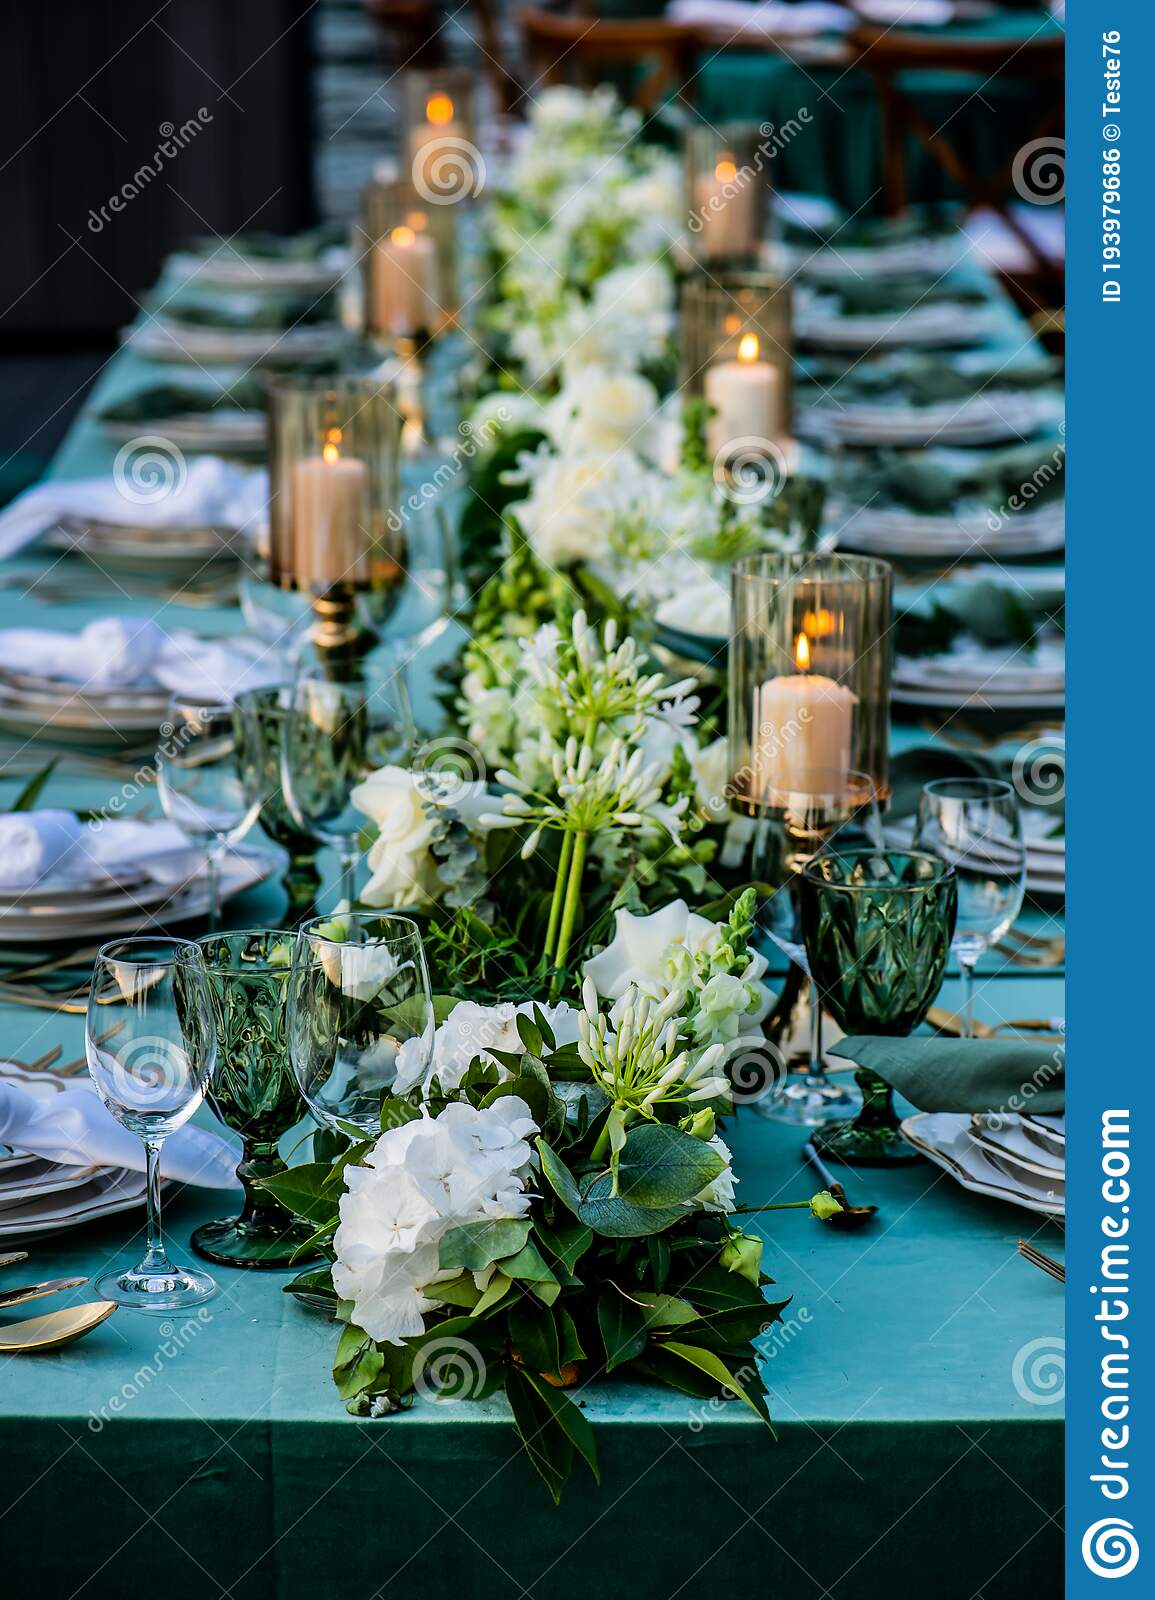 Flowers Candles Wedding Decoration Floral Arrangements Stock Photo Image Of Colored Banner 193979686